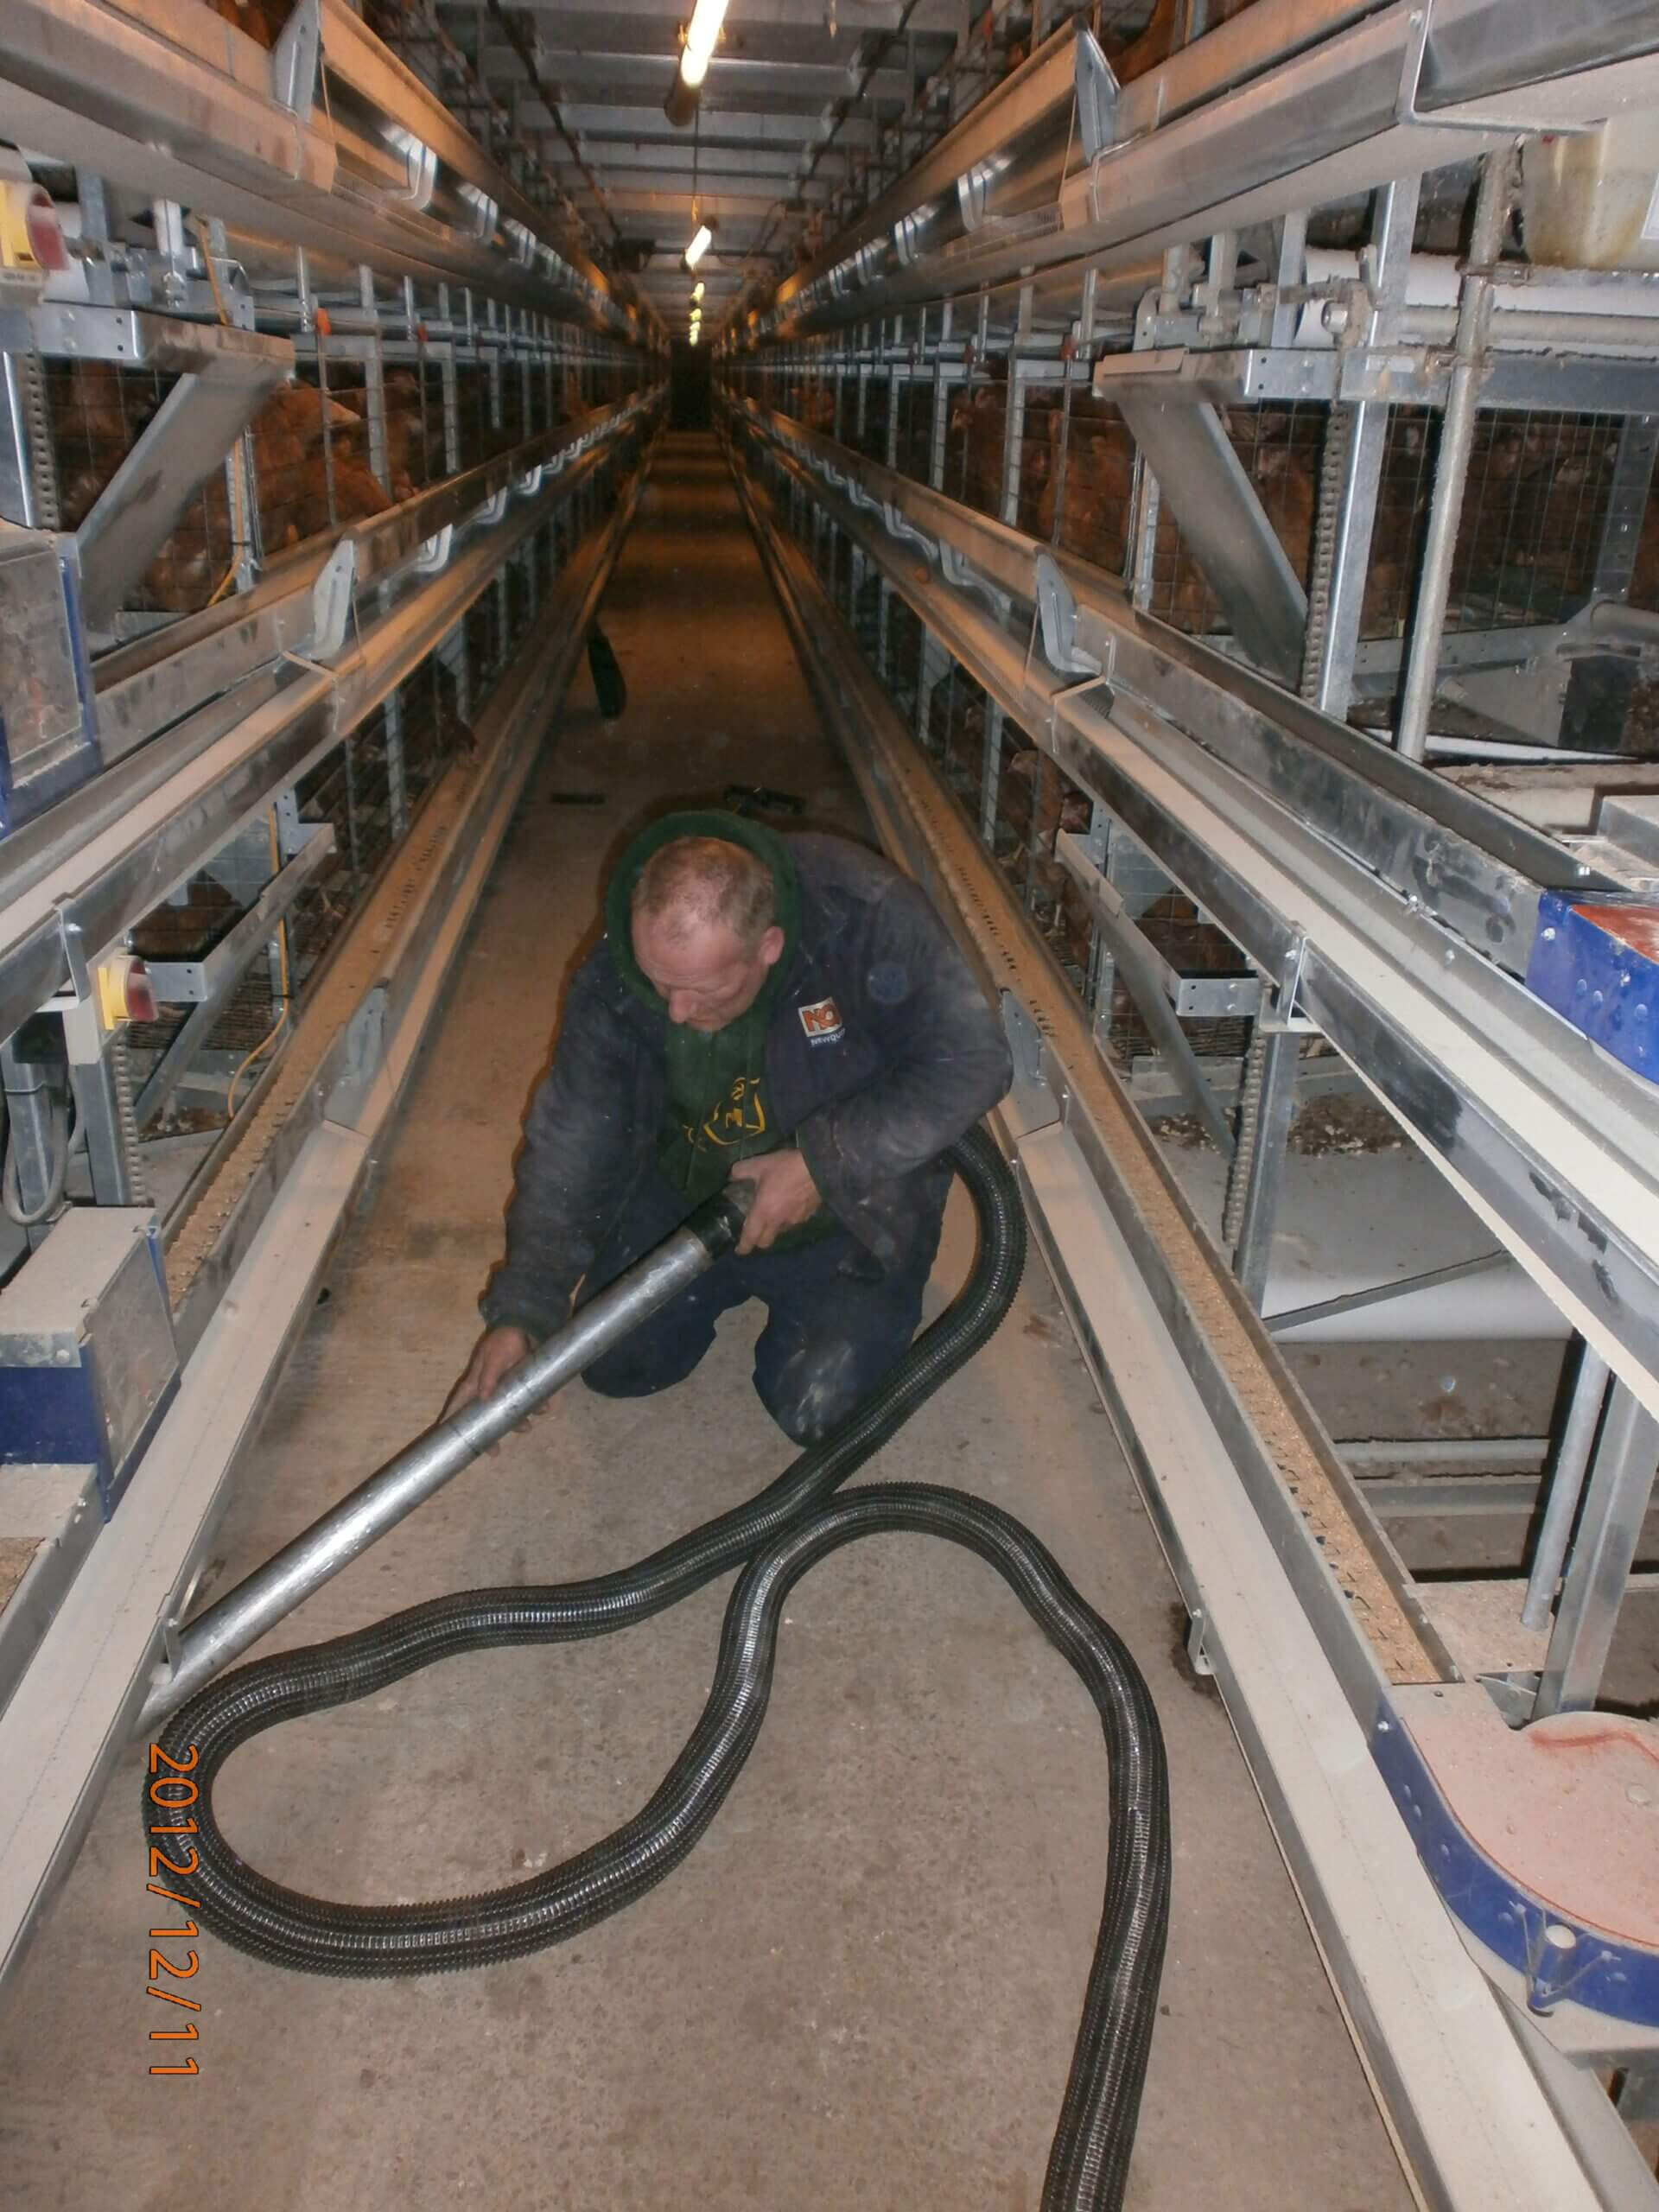 Craig Wilkinson Cleaning His Poultry Sheds With A Big Brute Farm Vacuum Cleaner